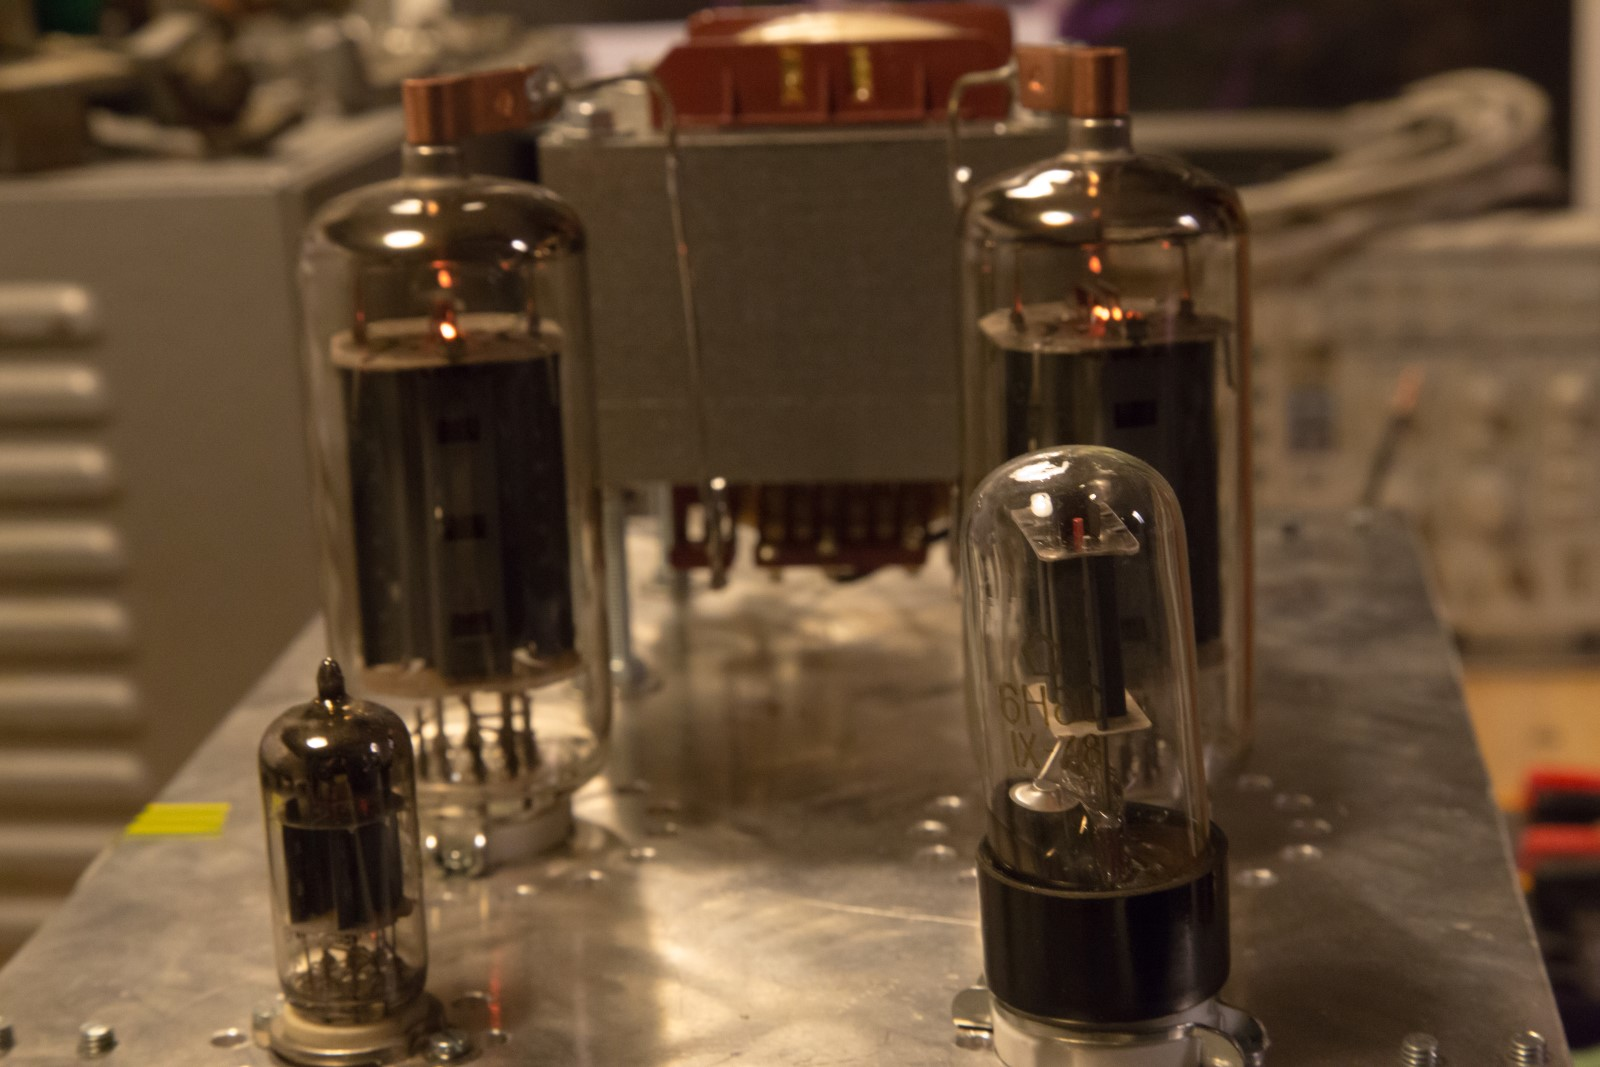 50w 6p45s Monoblock Tube Amplifier Kaizer Power Electronics Amplifiers Here Is A Video Of The First Time Working At Full Input Voltage And Negative Bias Adjusted For 1000 Mv Over Cathode Resistors